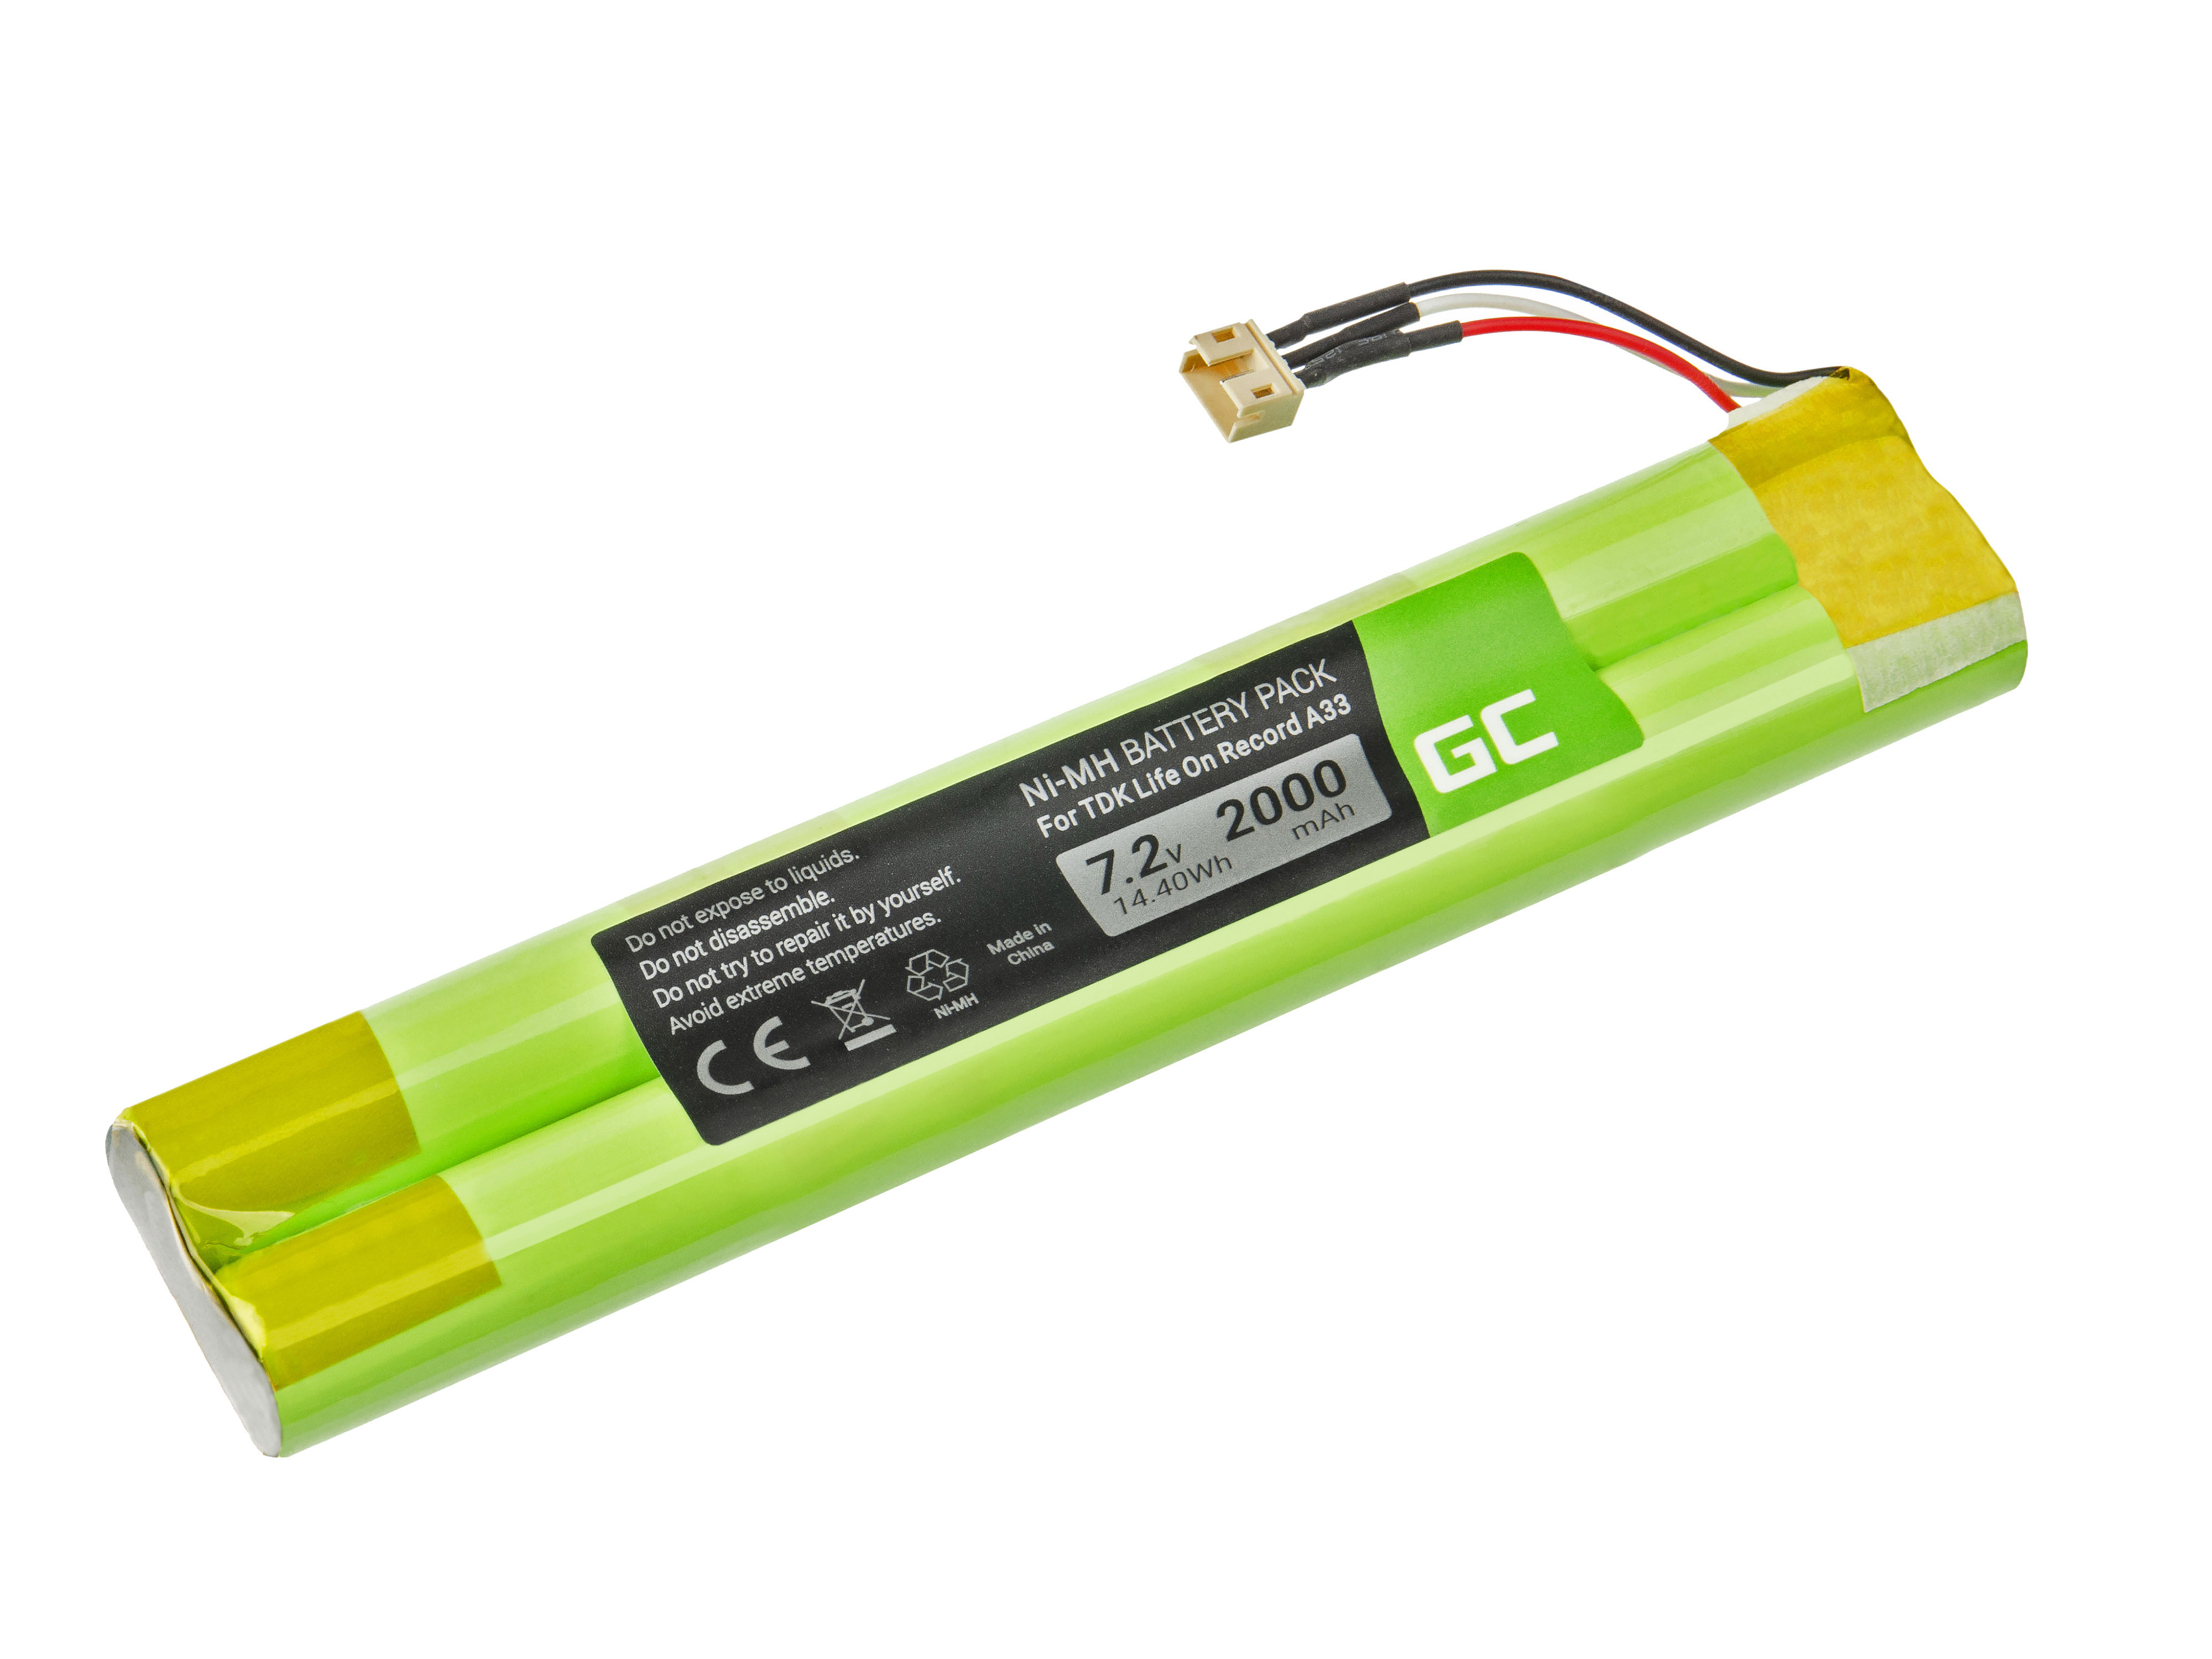 Green Cell SP17 Baterie EU-BT00003000-B TDK Life On Record A33 A34 TREK Max 2000mAh Ni-MH – neoriginální